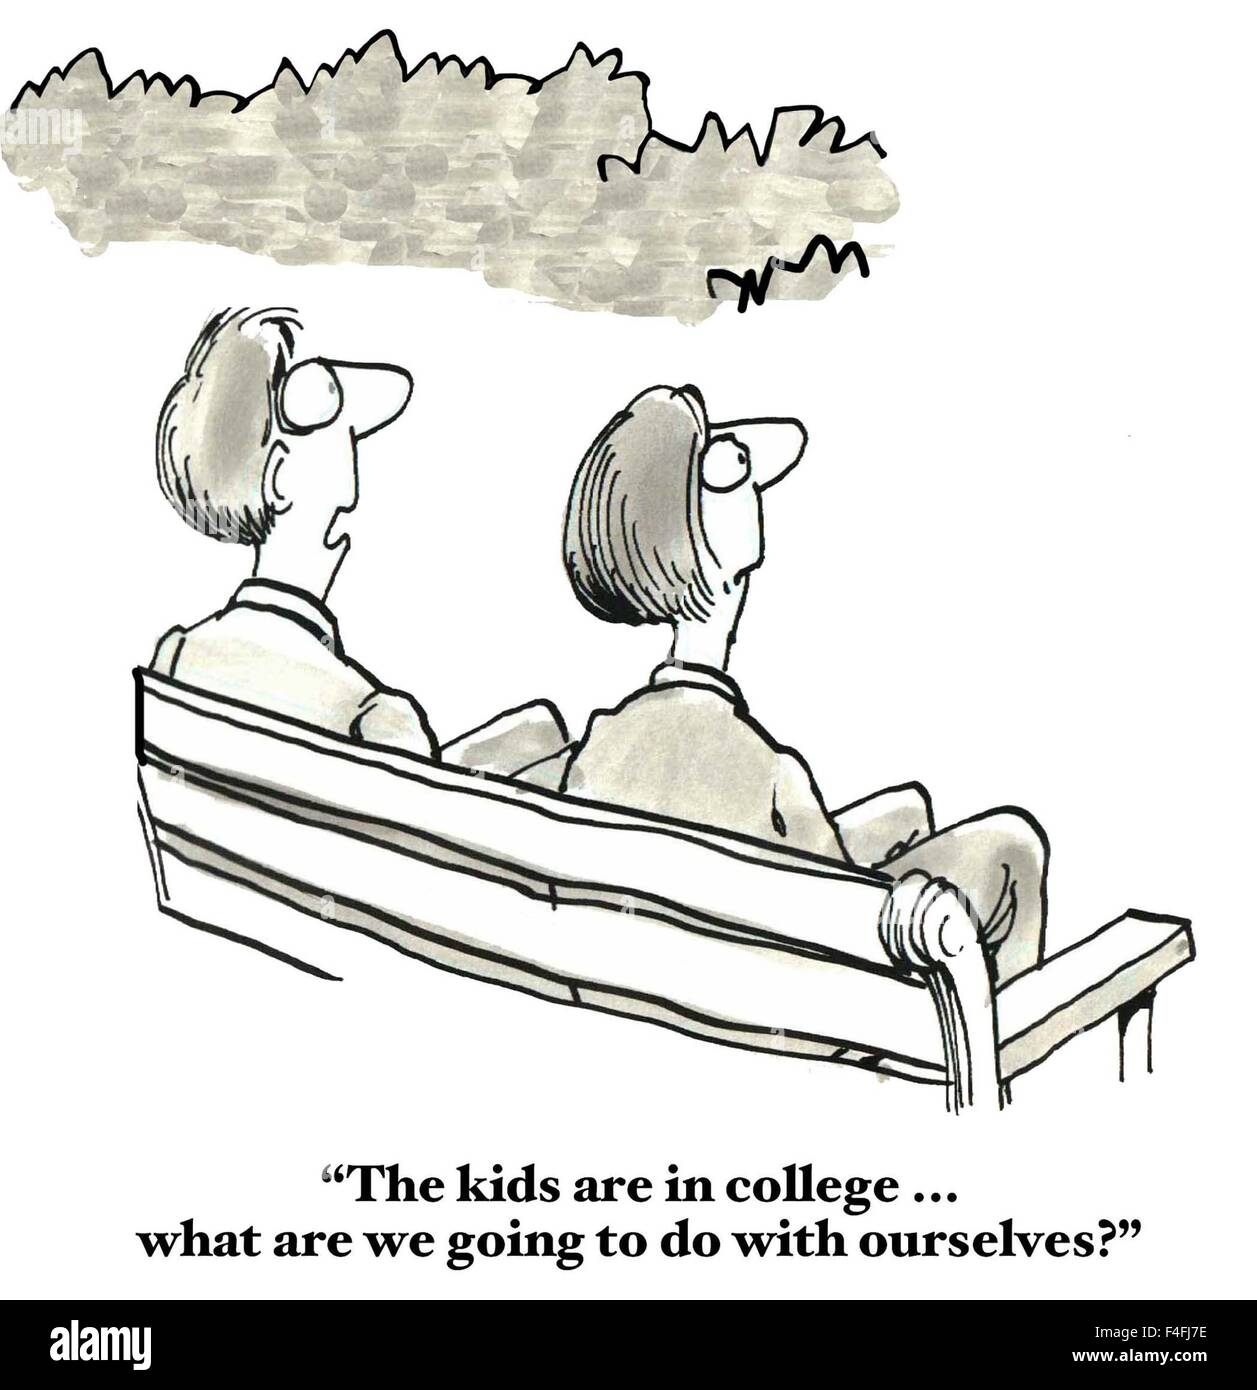 helicopter parents college with Stock Photo Empty Nester Cartoon Of Parents Saying The Kids Are In College What 88854066 on Stock Photo Empty Nester Cartoon Of Parents Saying The Kids Are In College What 88854066 moreover Plane Take Off Like A Helicopter additionally Funny Pokemon furthermore Helicopter Parents as well Generation X Americas Neglected Middle Child.